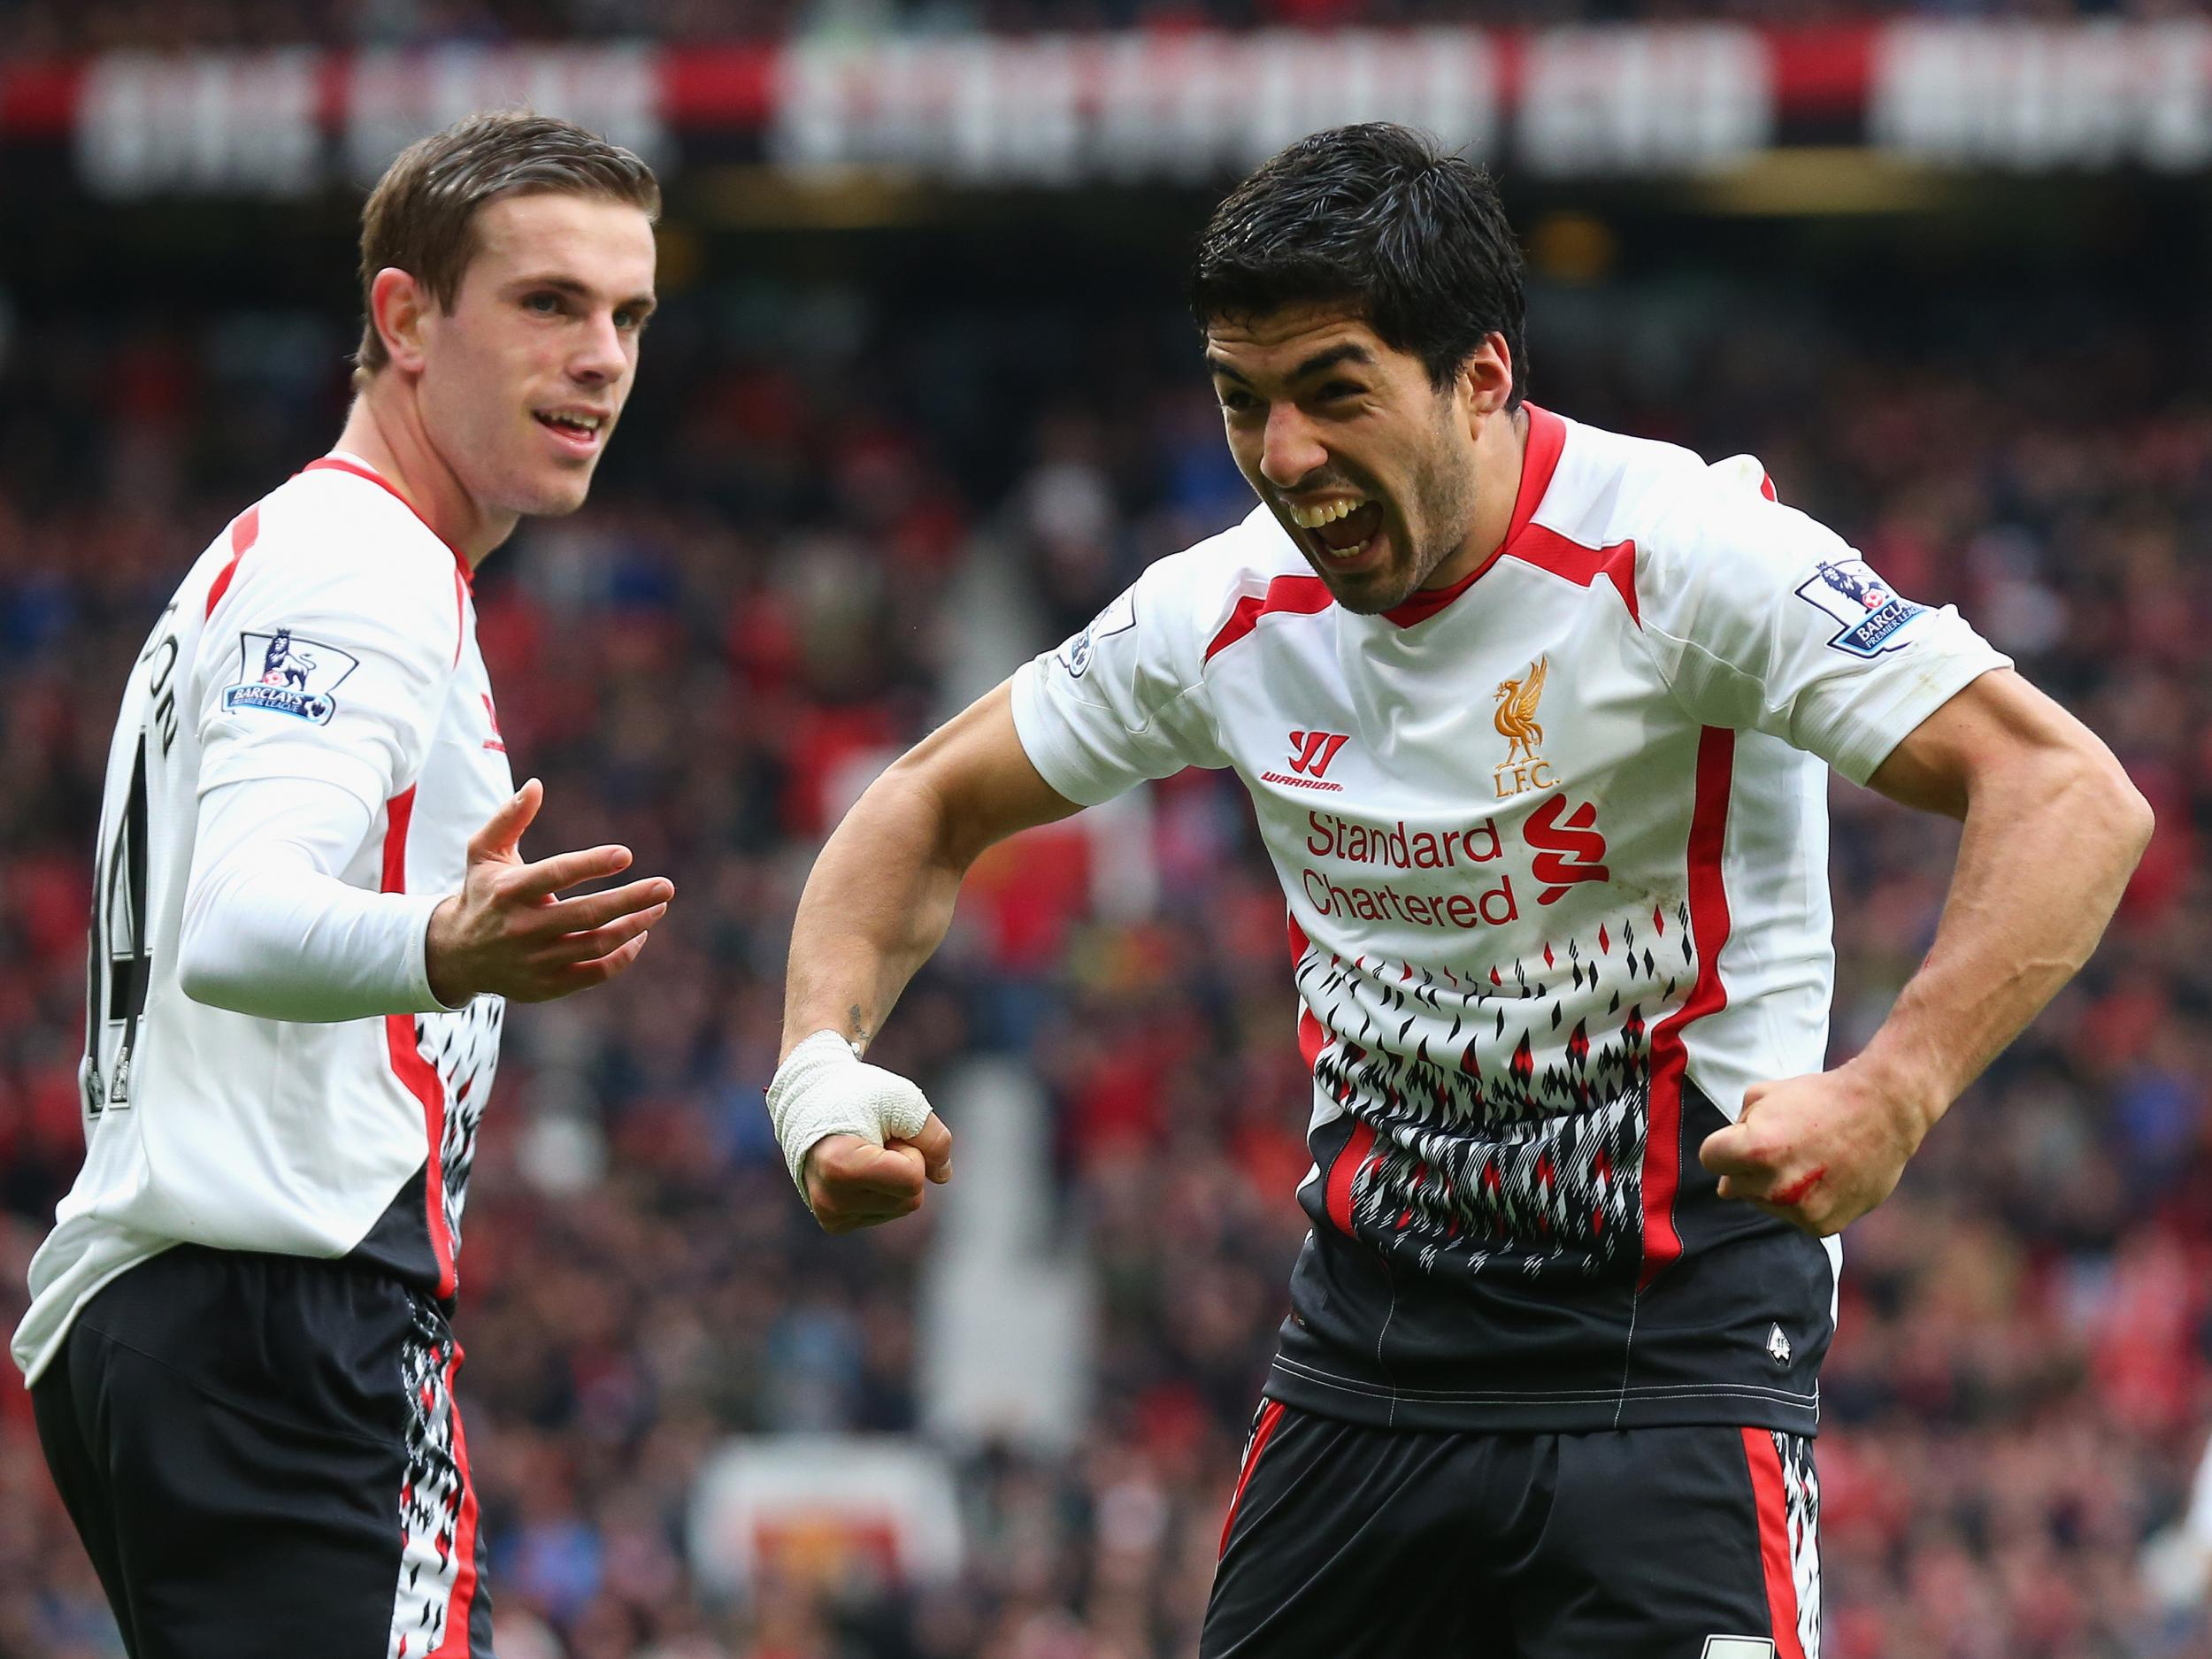 Jordan Henderson remembers when he was 'ready to kill' Luis Suarez at Liverpool